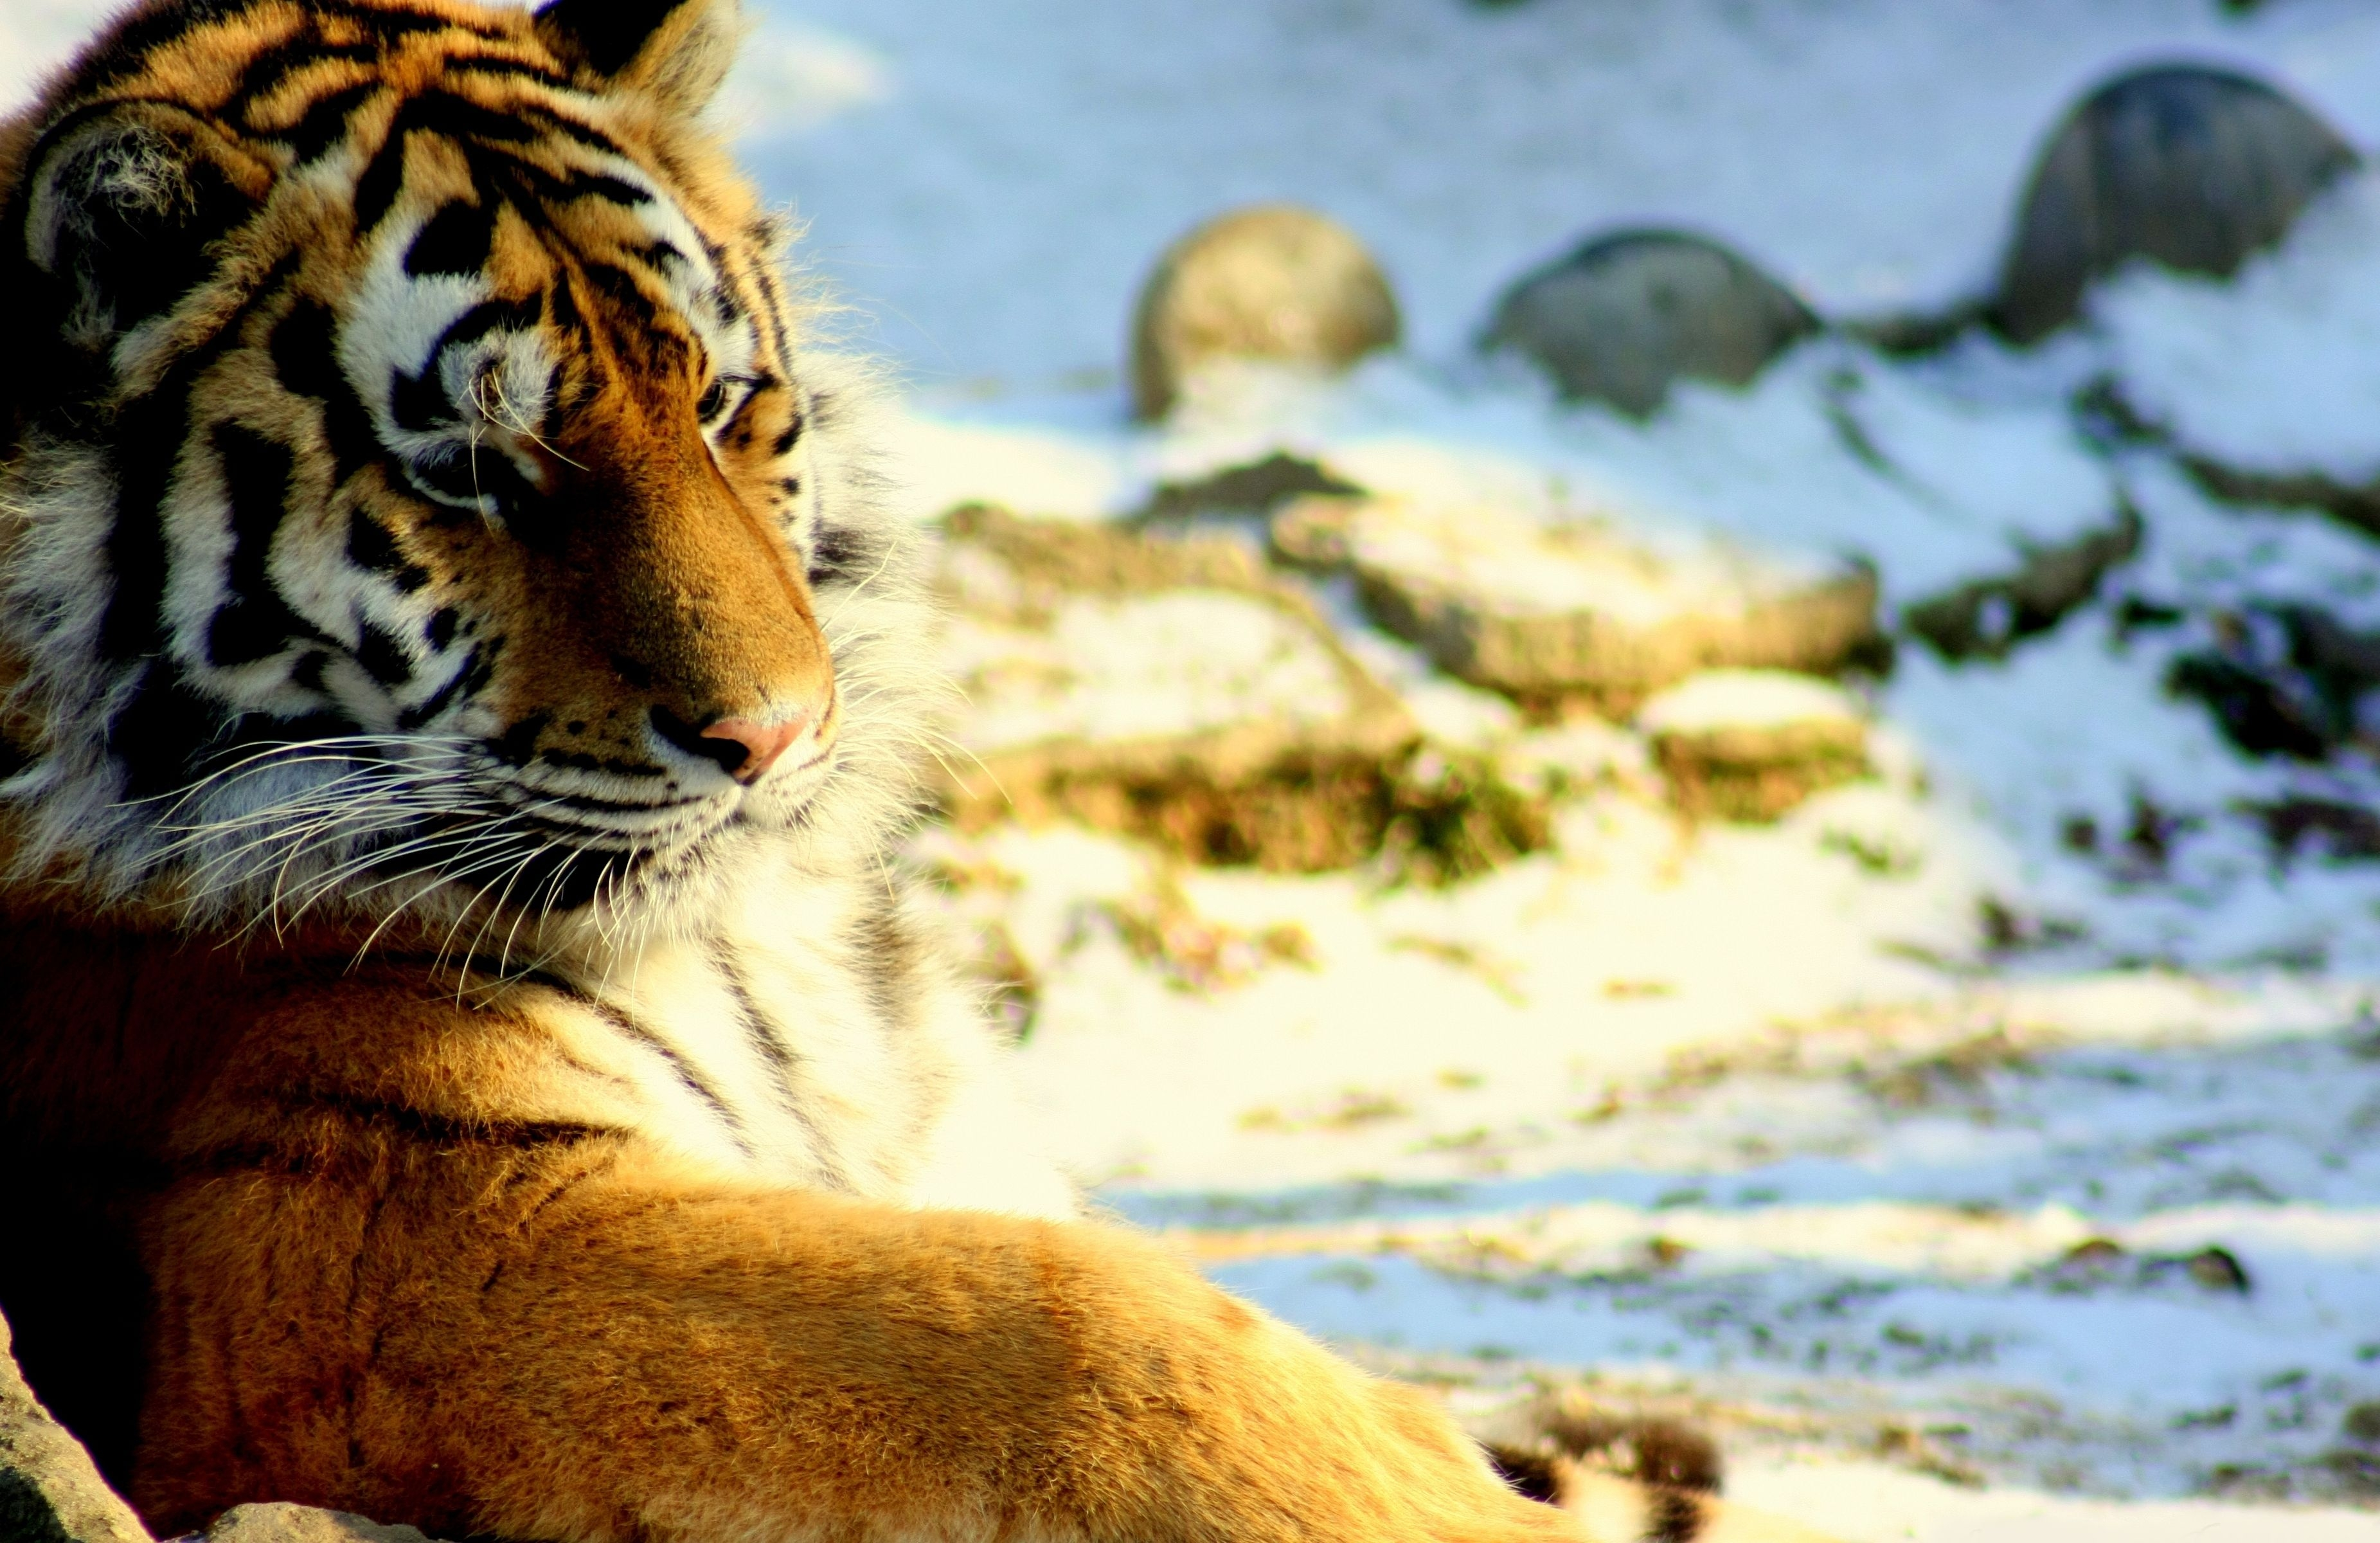 87941 download wallpaper Animals, Tiger, Predator, Snow, To Lie Down, Lie, Big Cat screensavers and pictures for free